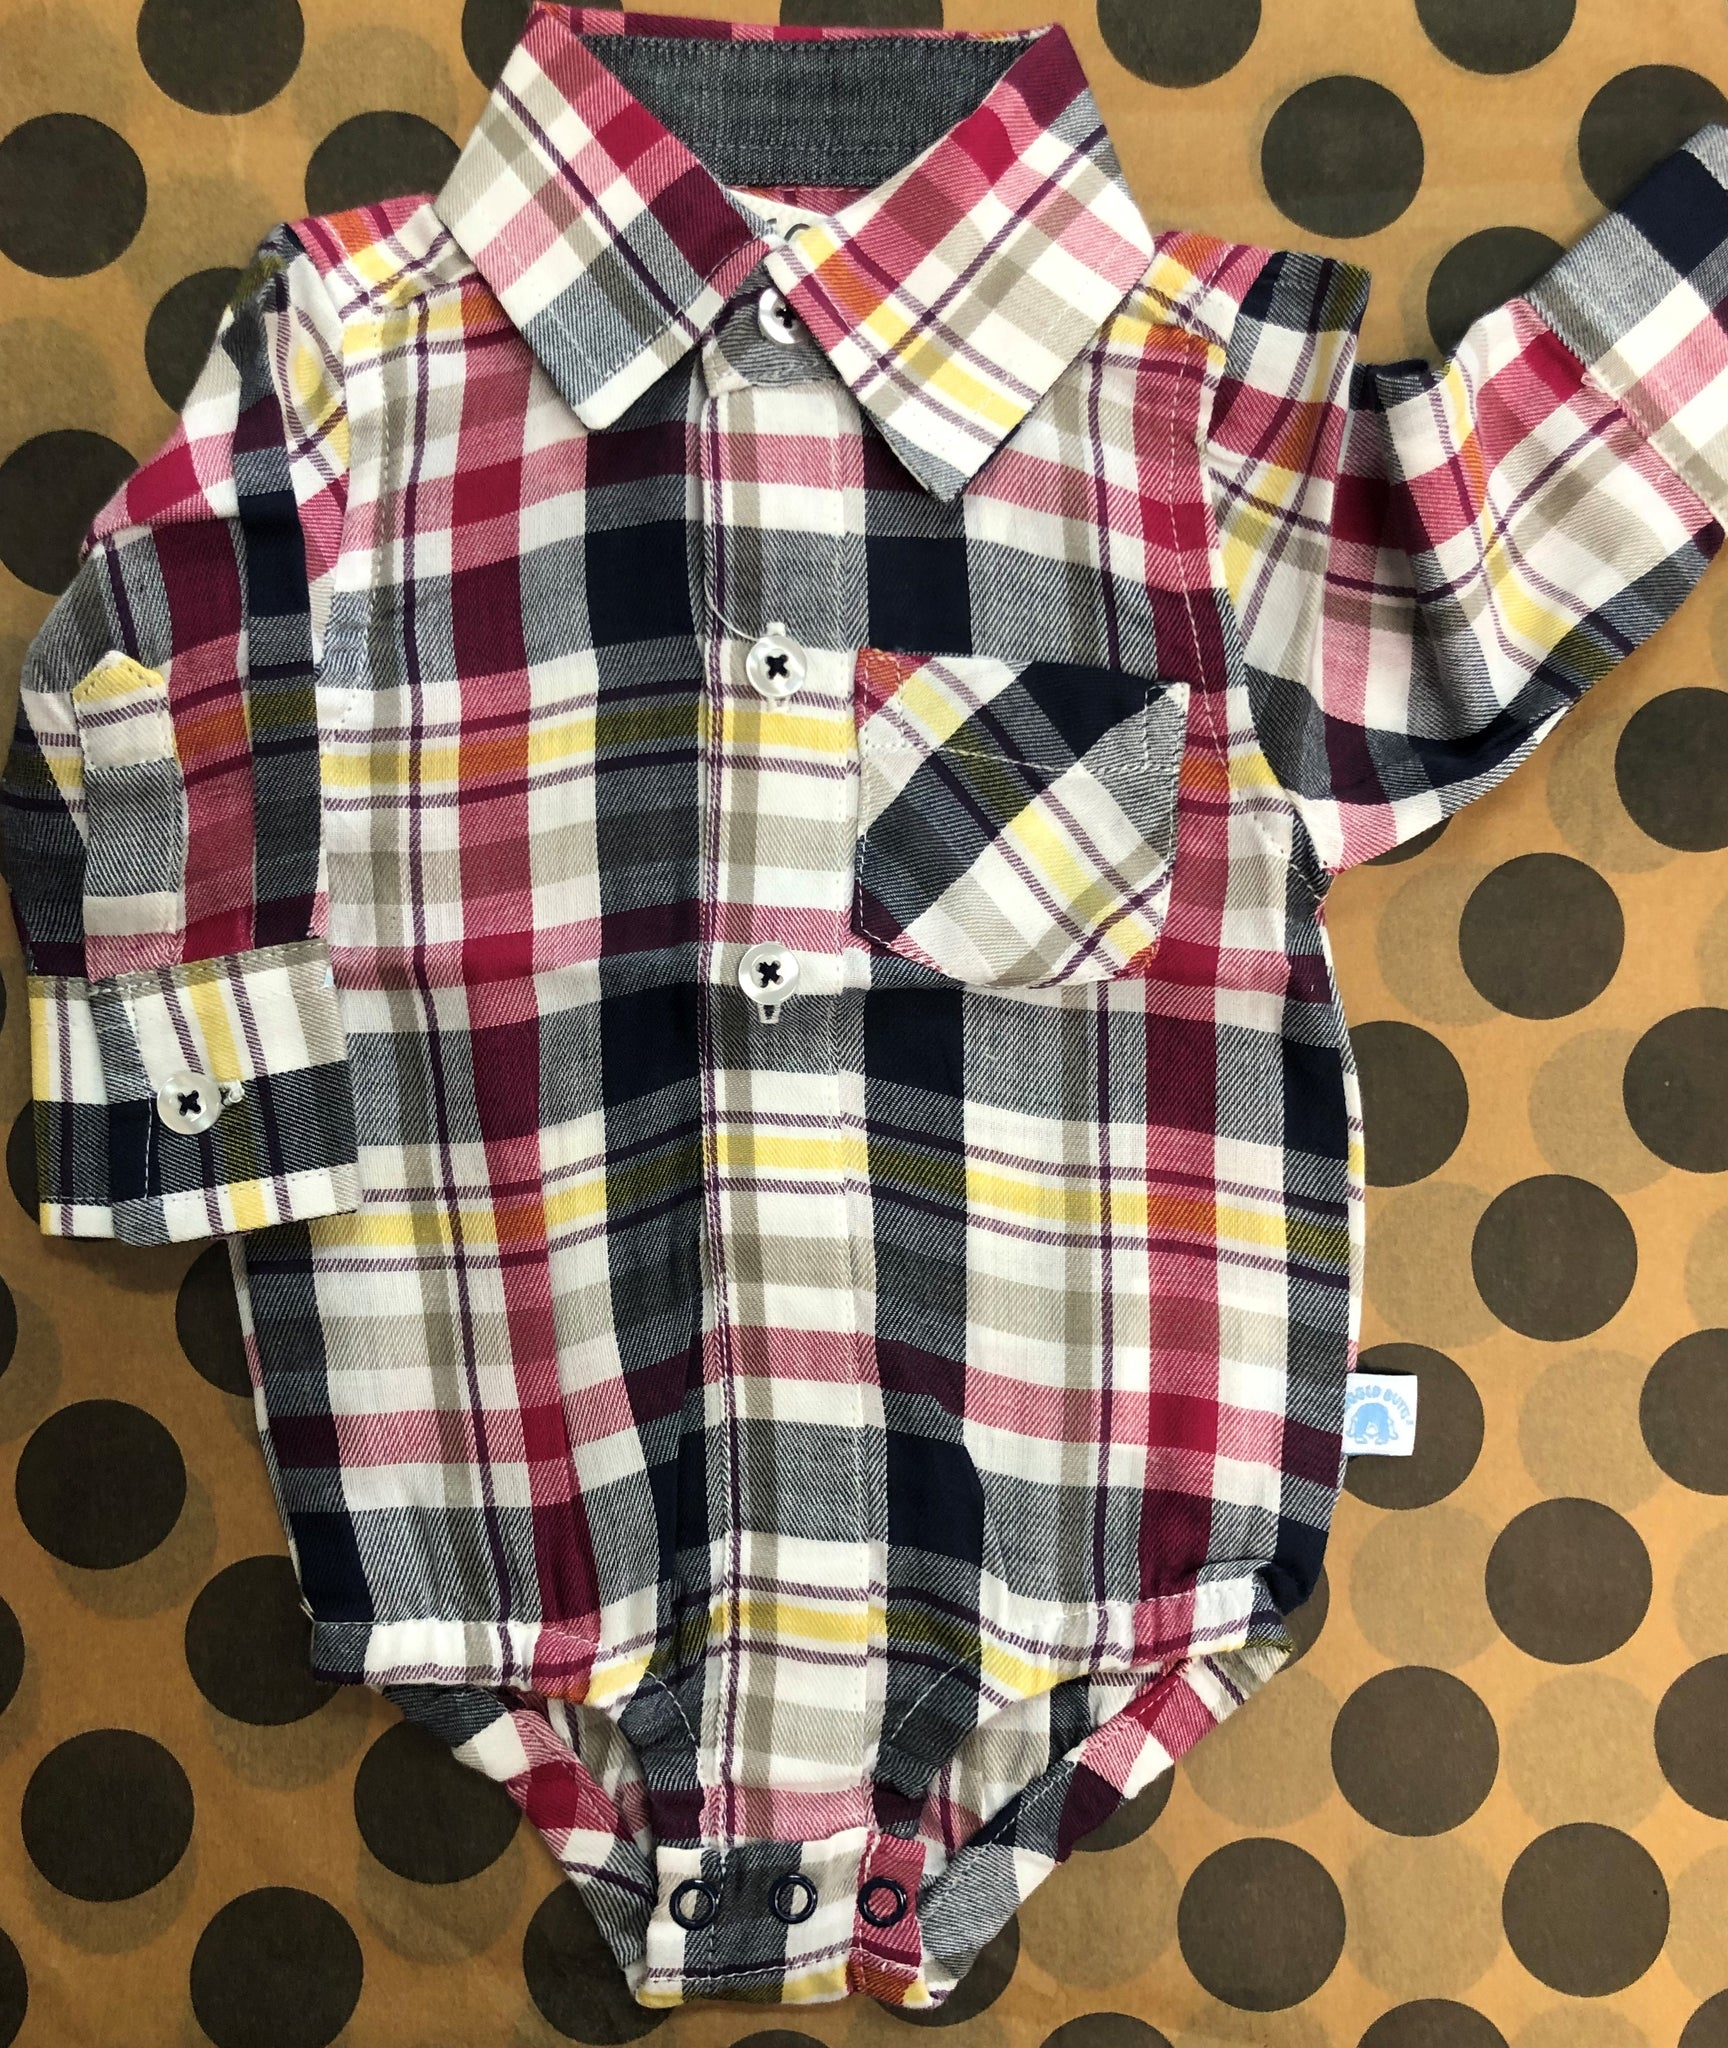 Taylor Plaid Button-Up Body Suit